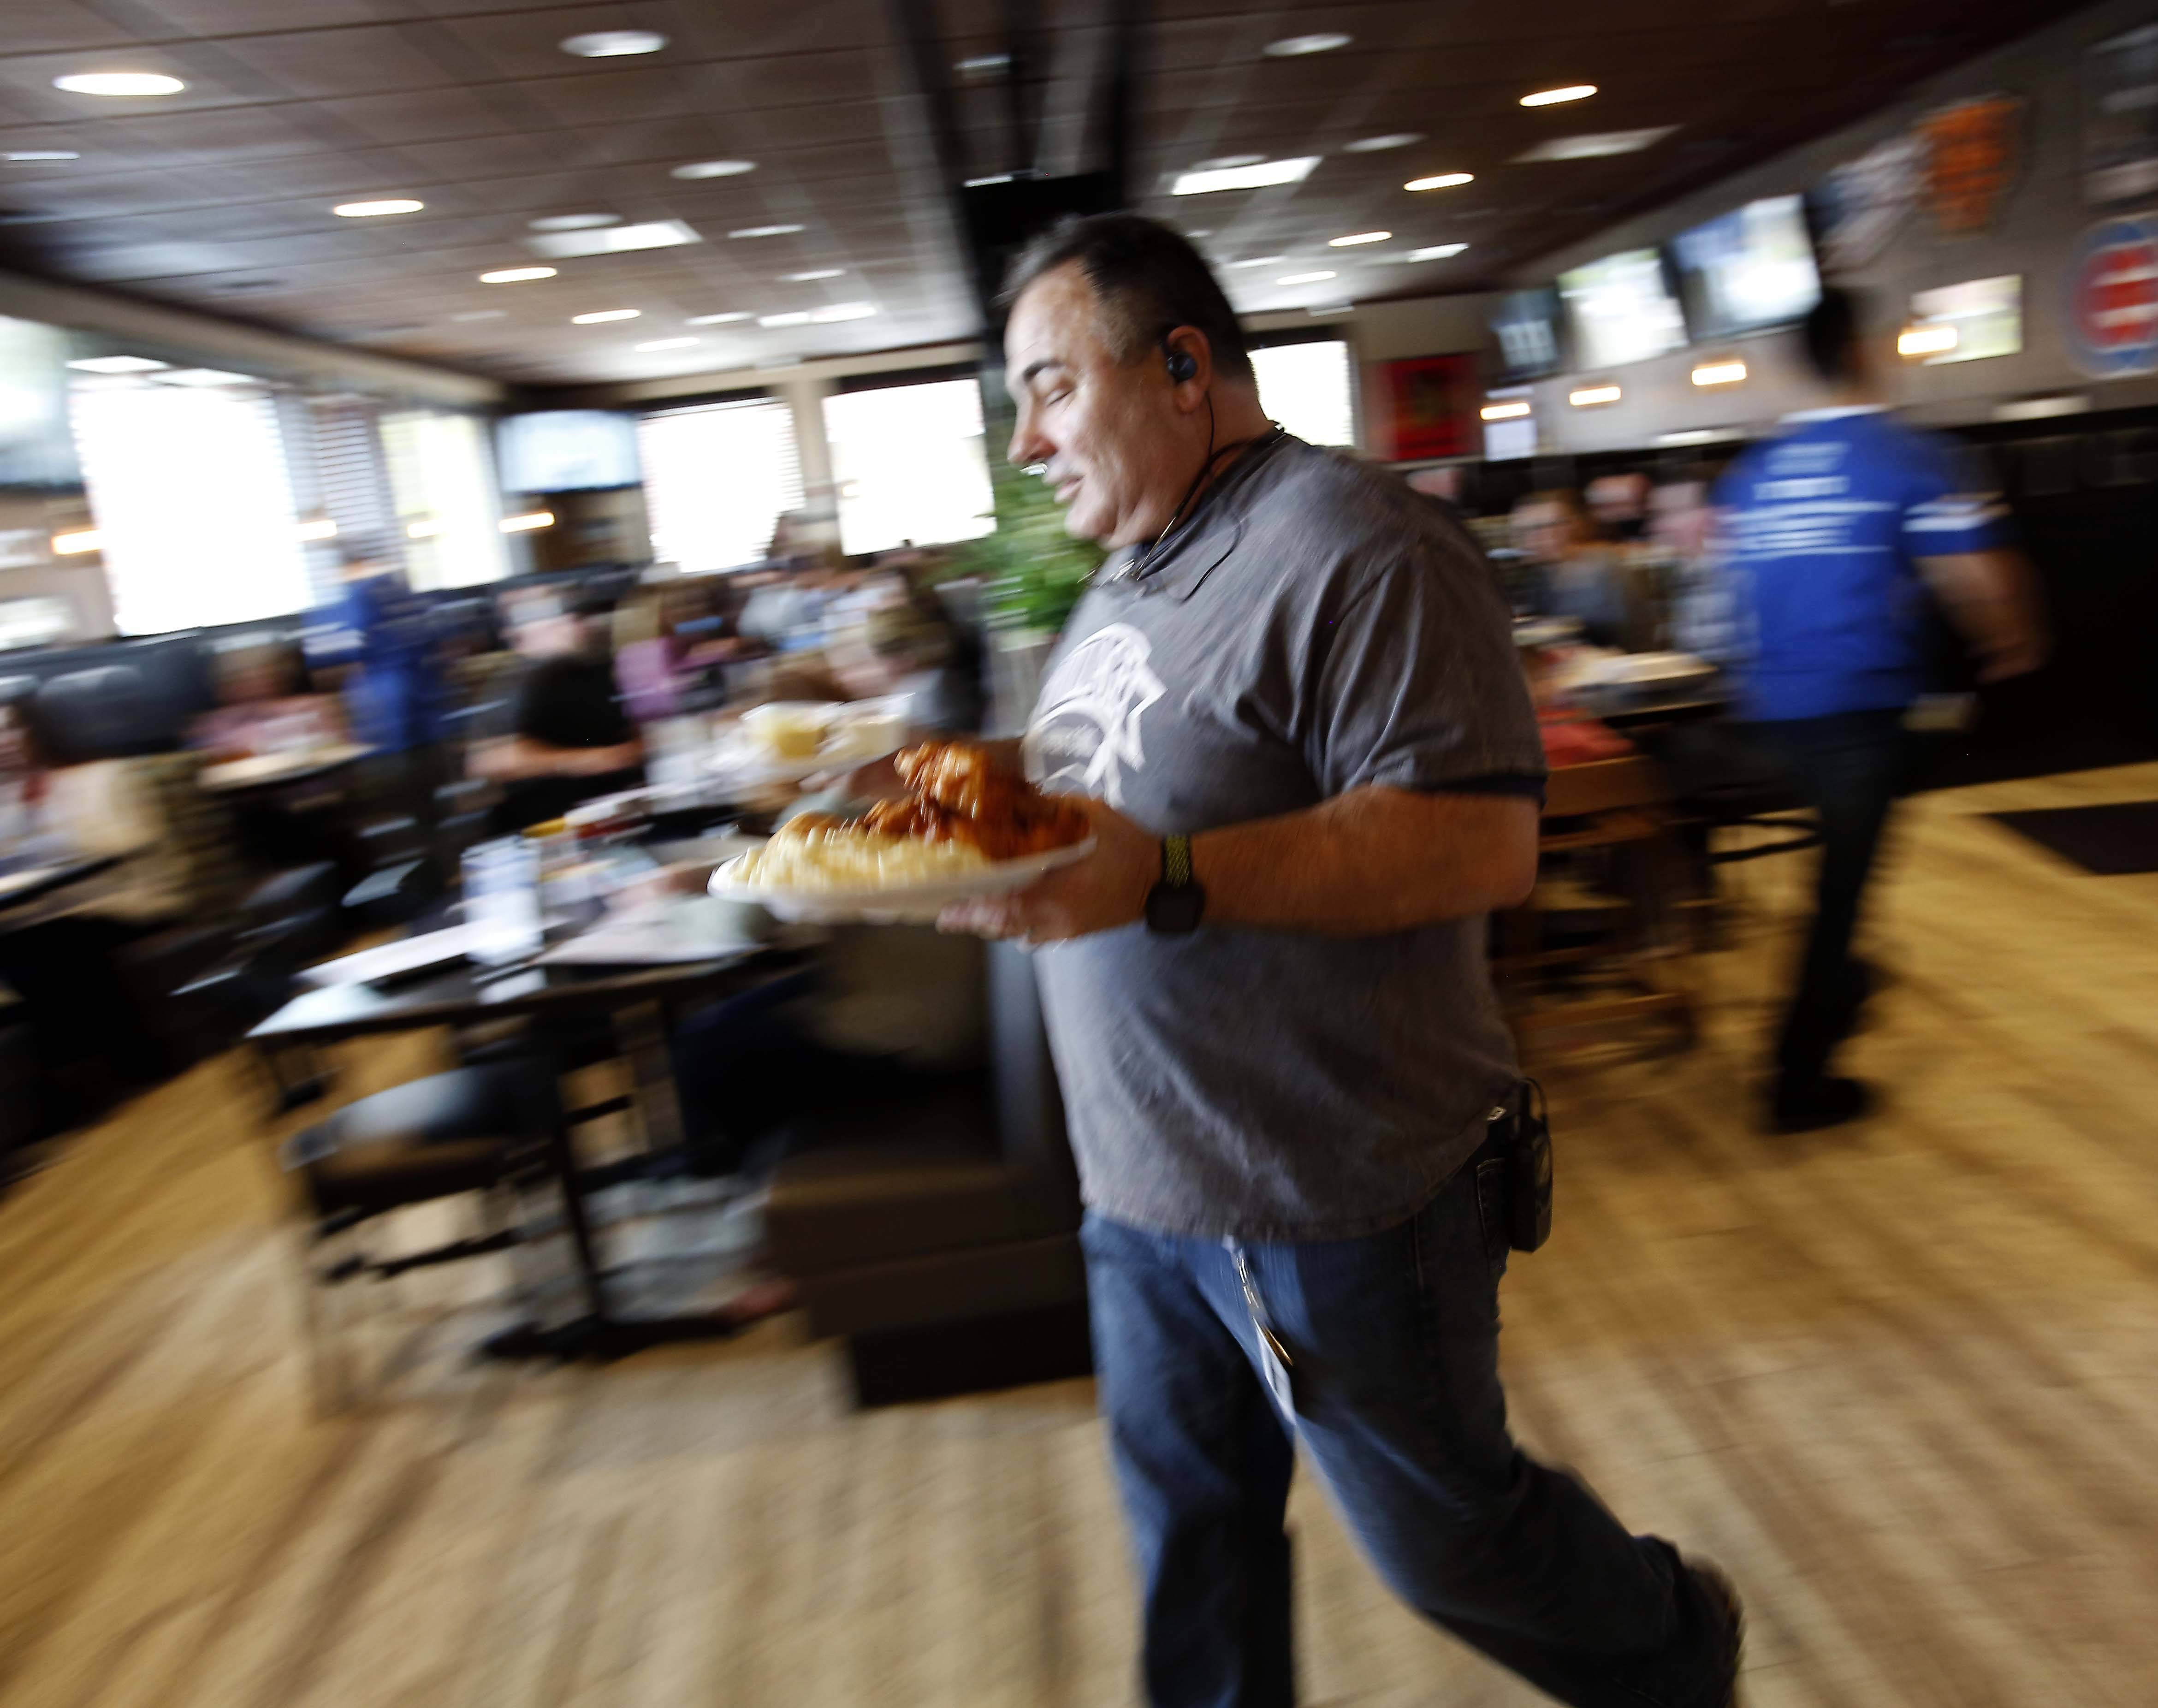 Village Tavern & Grill owner J.R. Hutson celebrates the store's South Elgin opening Thursday by rushing a lunch order to a customer.